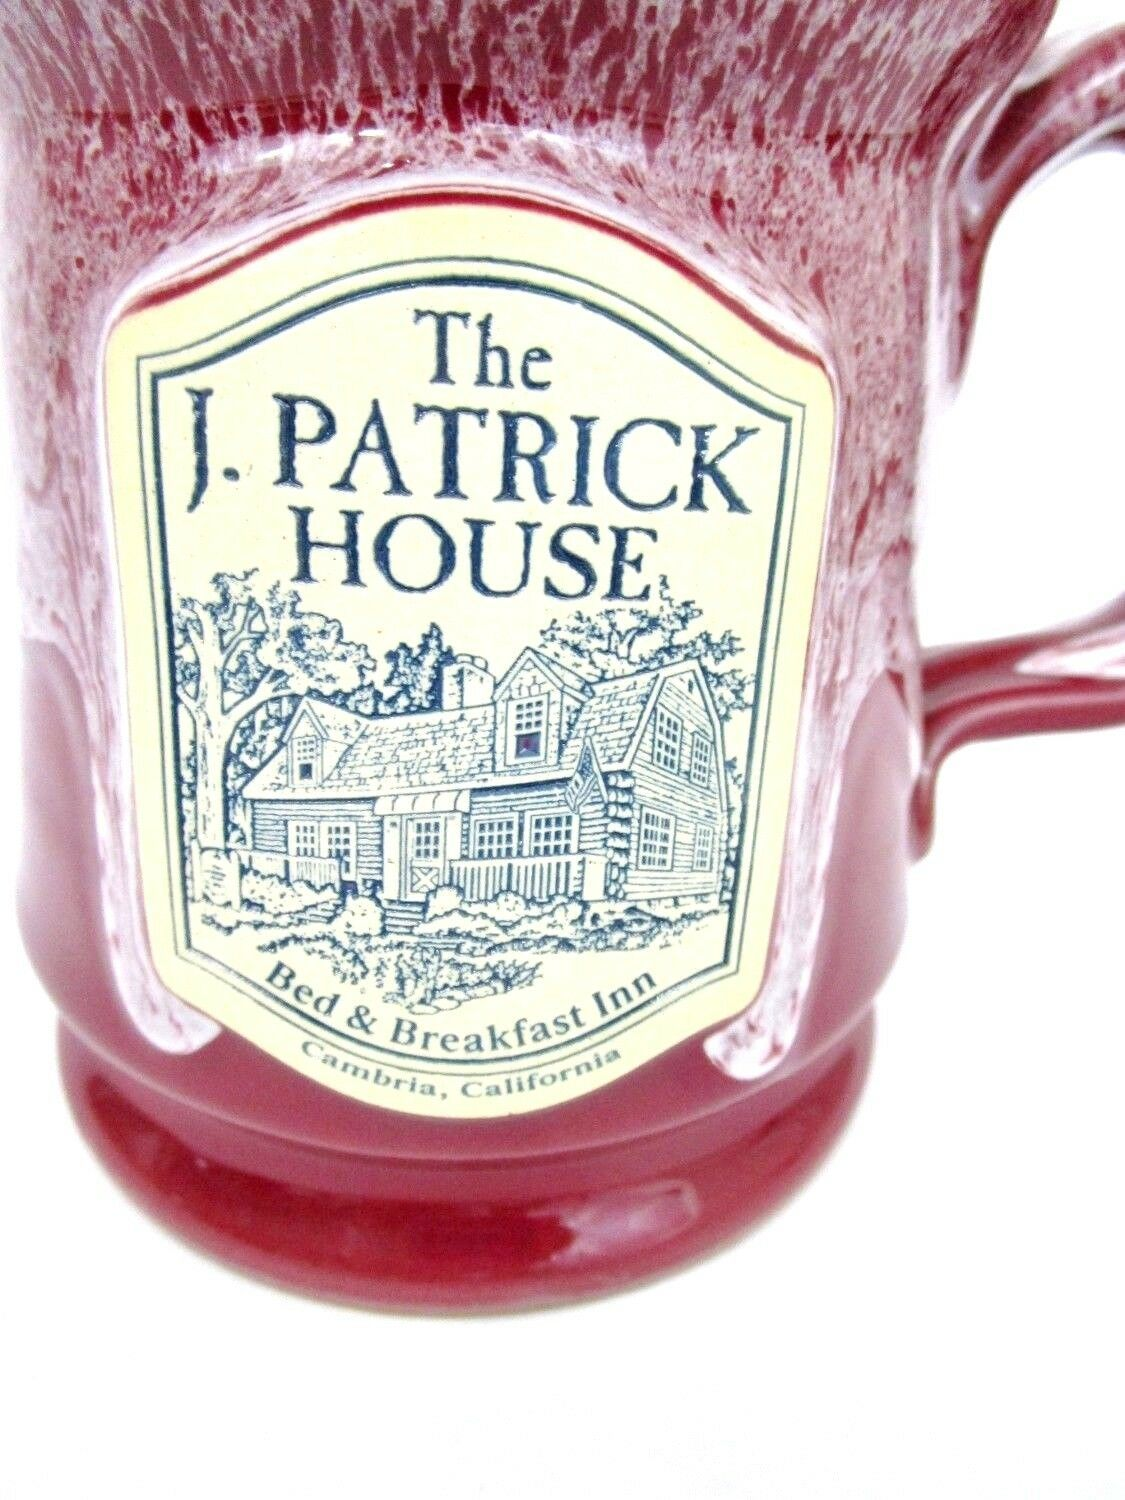 J Patrick House Pottery Mug Cup Cambria CA Bed Breakfast Glazed Collectible